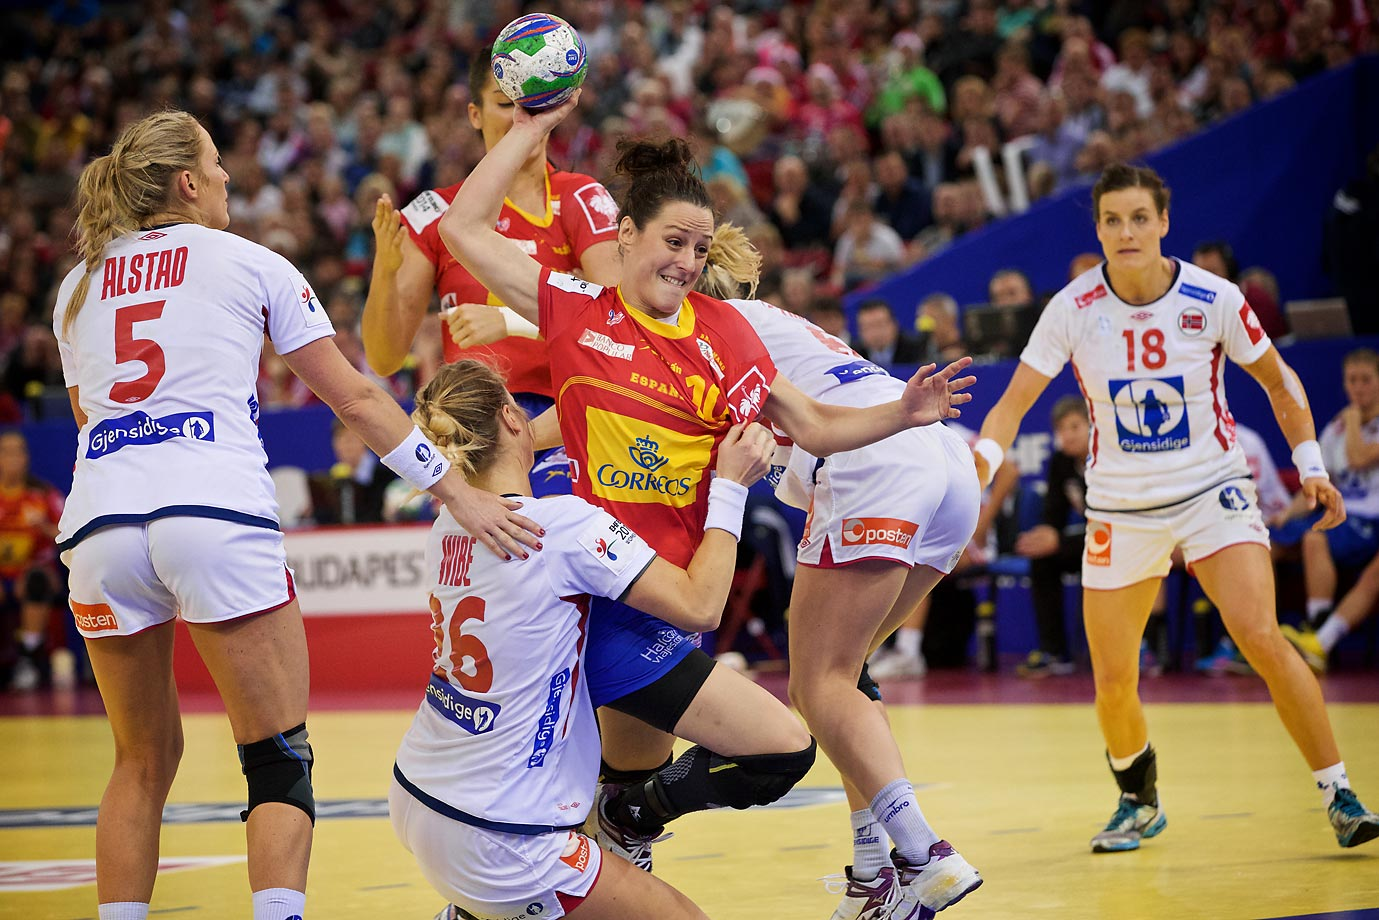 Spain's Macarena Aguilar breaks through Norway's defense in the championship game.